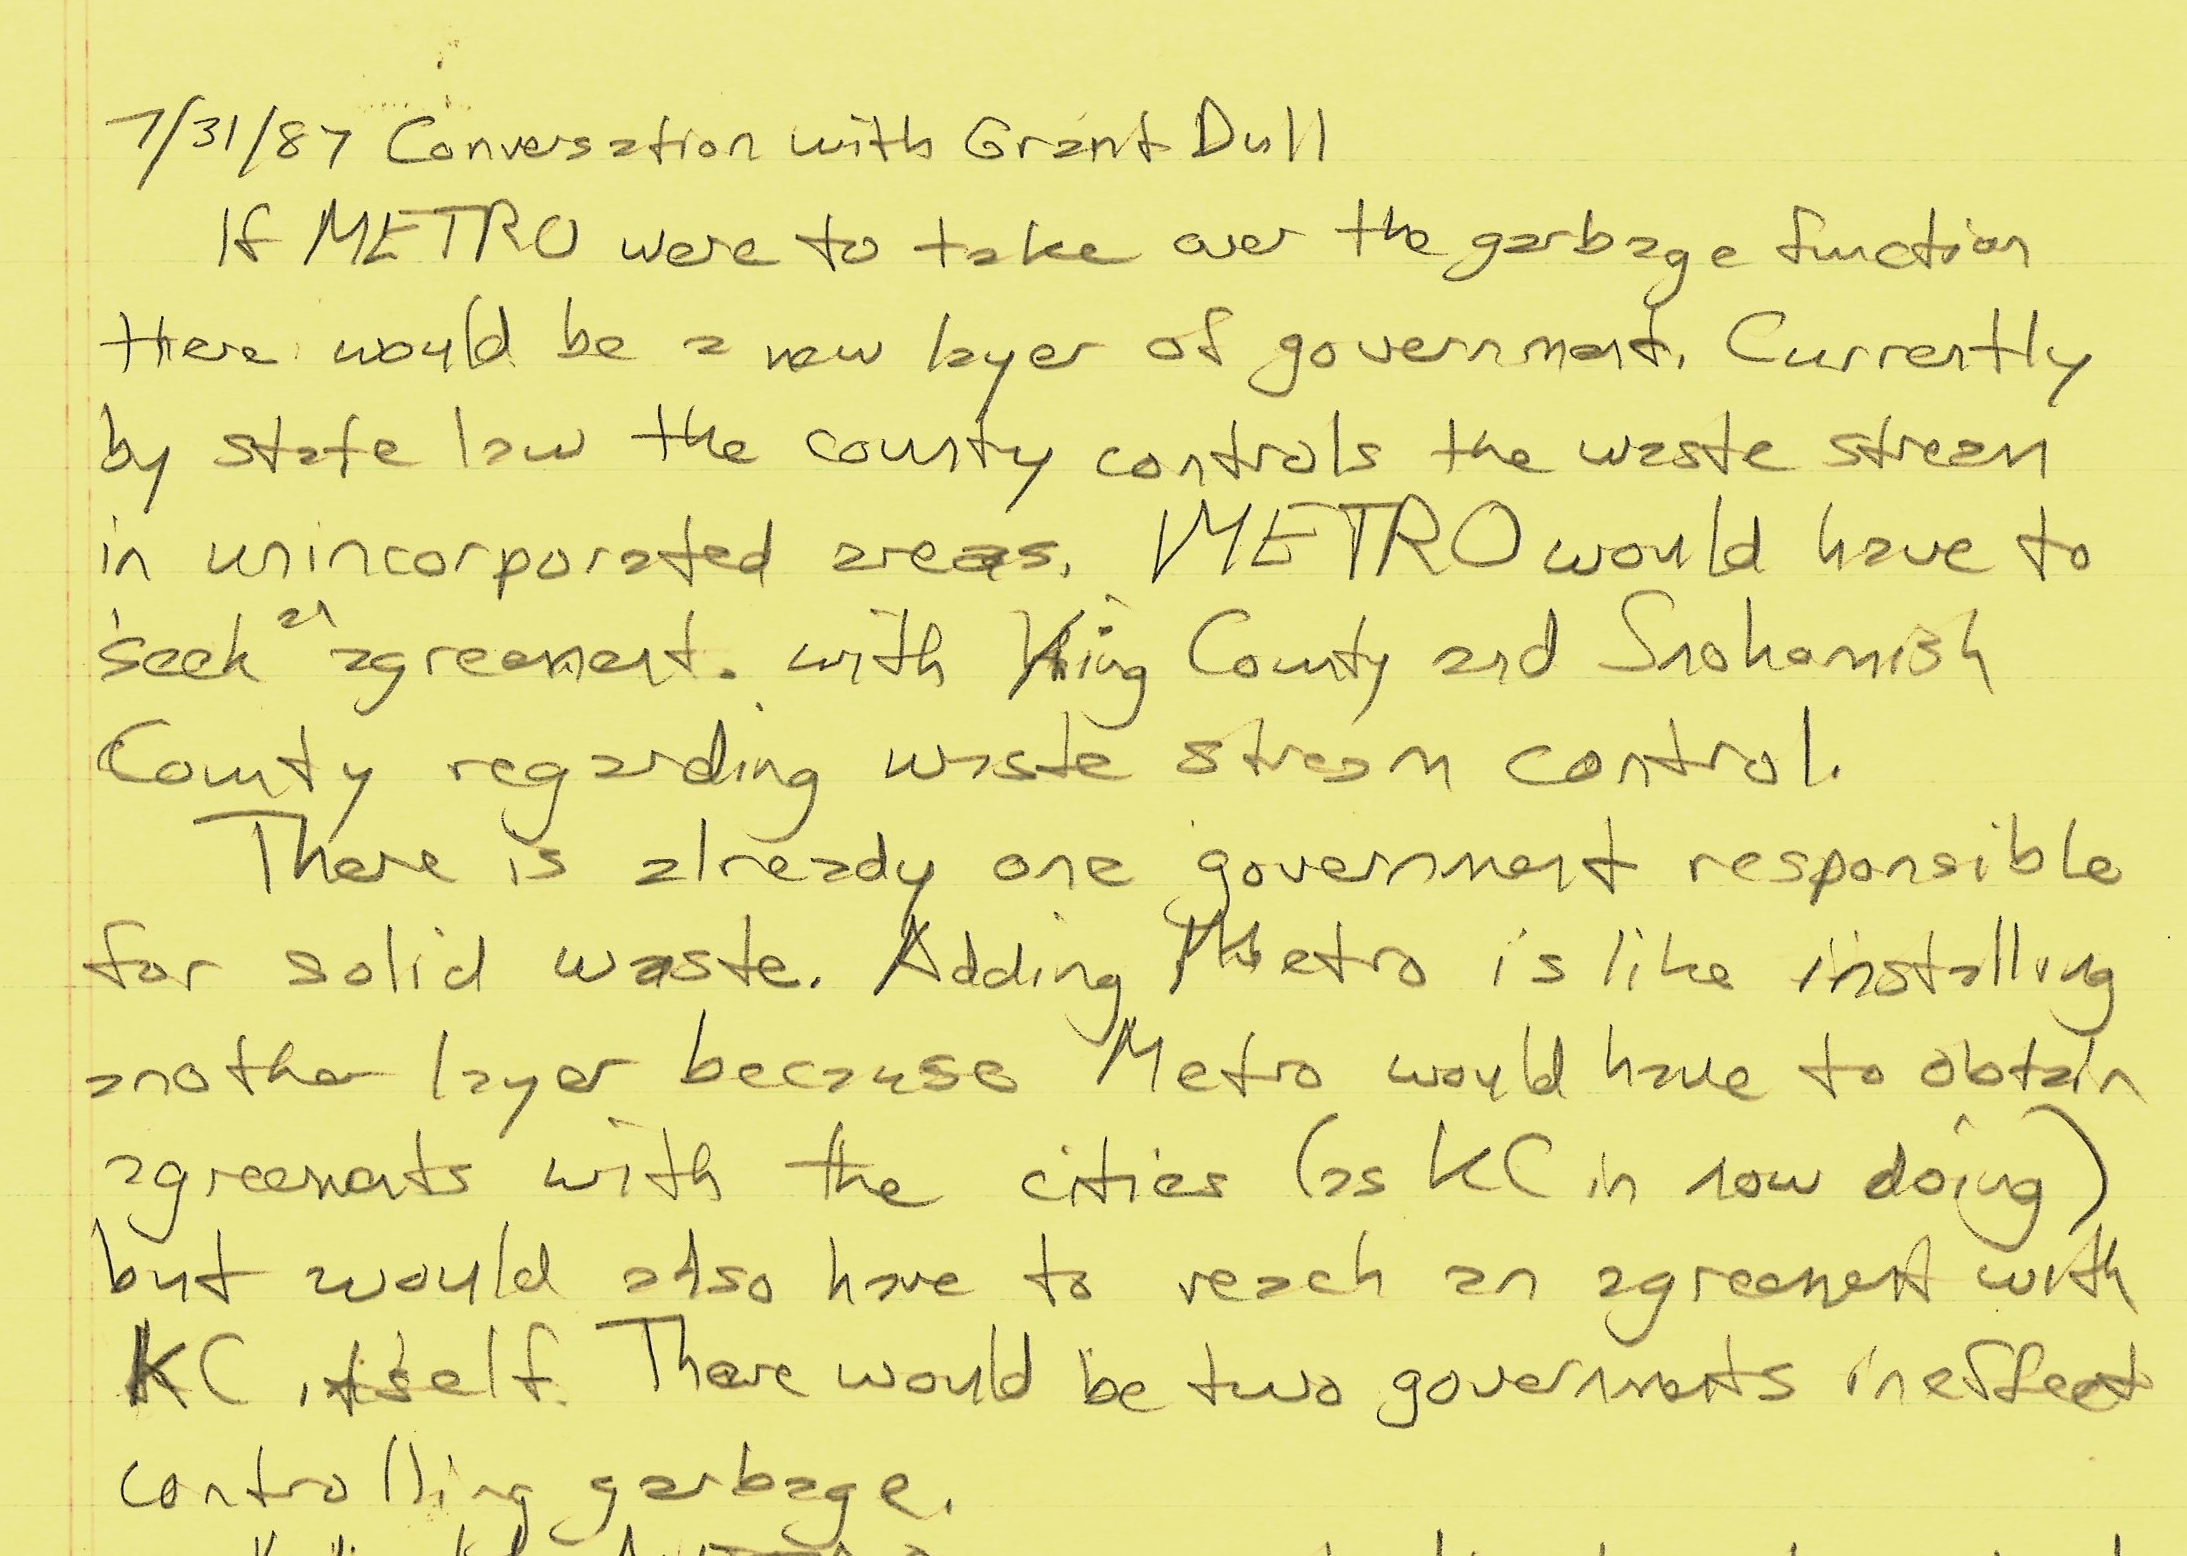 hill_notes_on_metro_taking_on_solid_waste_functions-1987_436-3-1